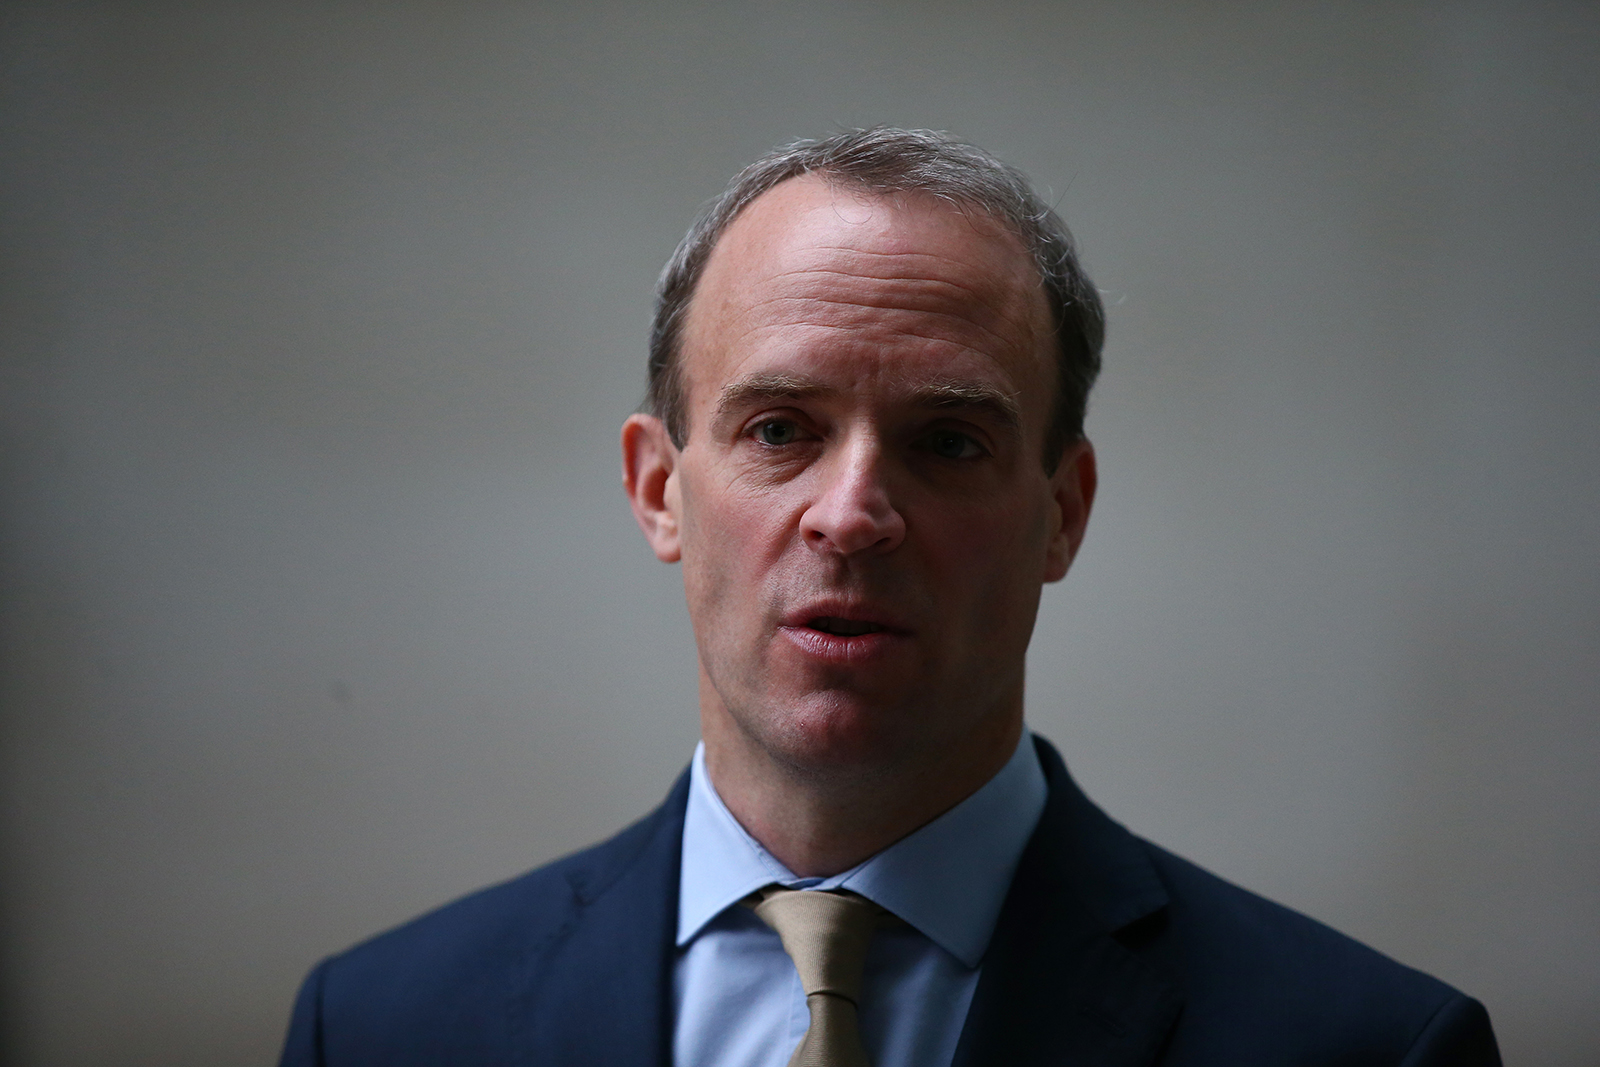 Britain's Foreign Secretary and First Secretary of State Dominic Raab leaves the BBC Television Centre after appearing on The Andrew Marr Show at November 29, 2020 in London, England.